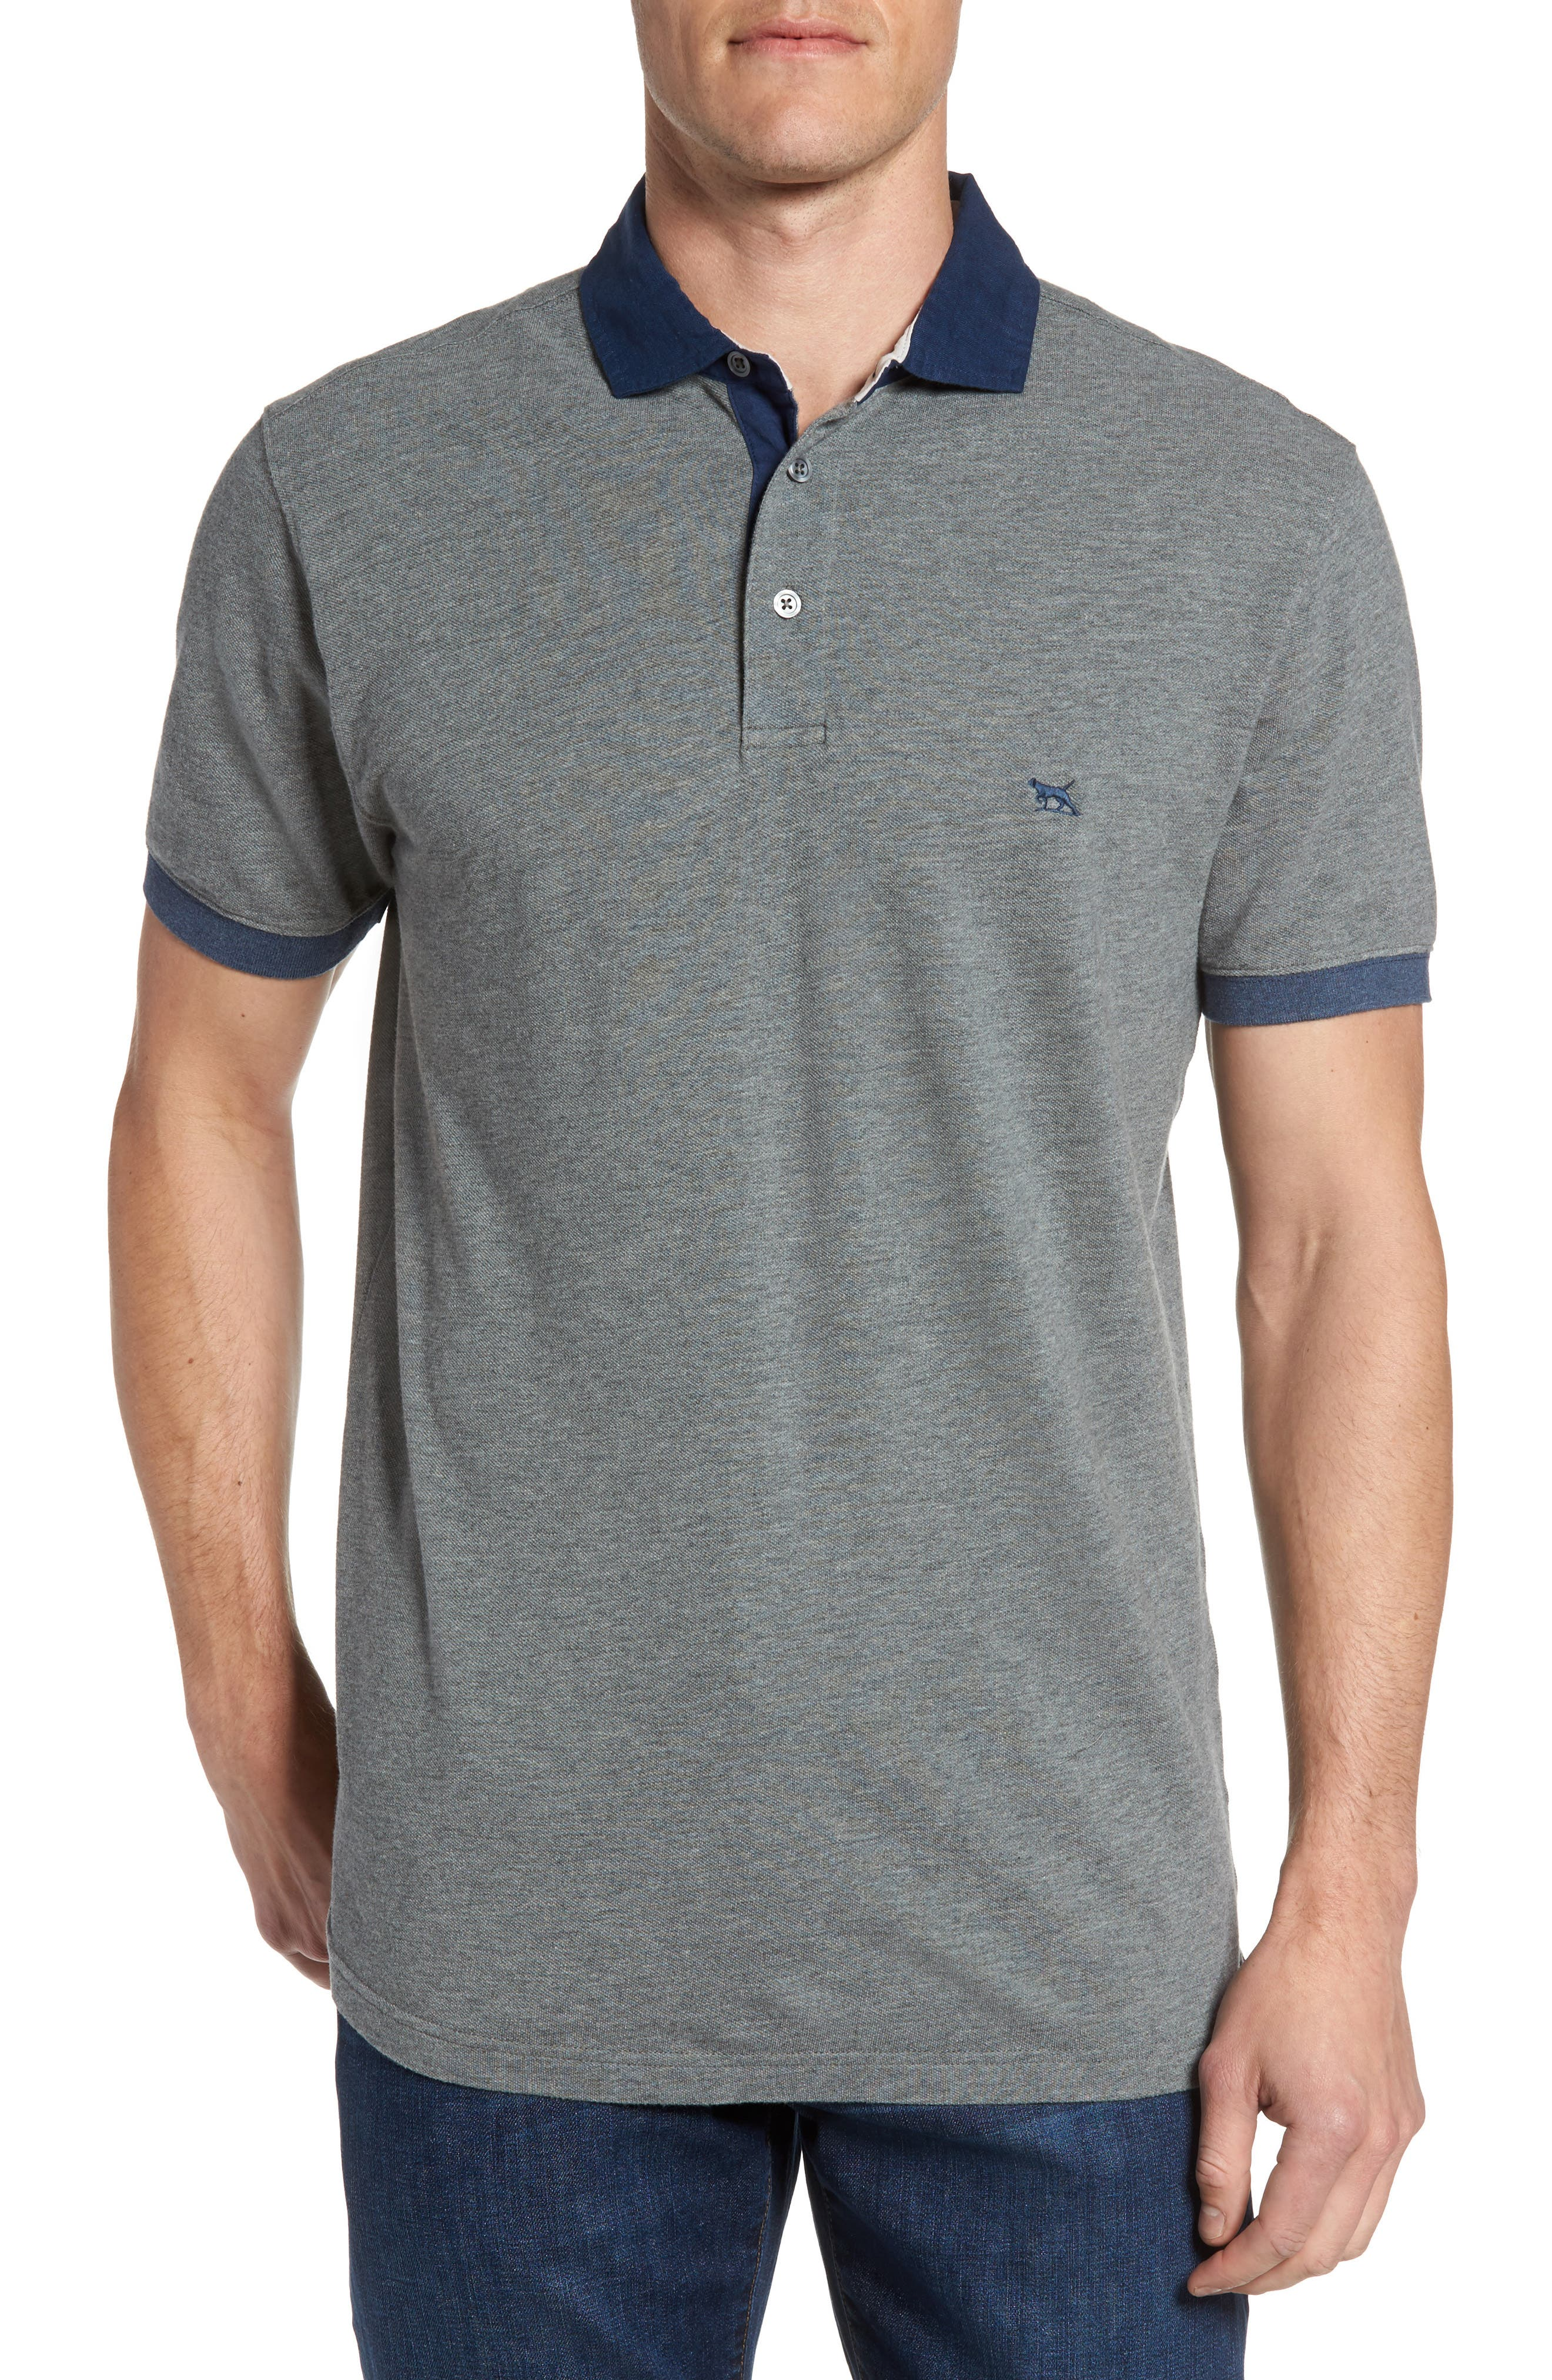 Alternate Image 1 Selected - Rodd & Gunn West Dome Contrast Trim Polo